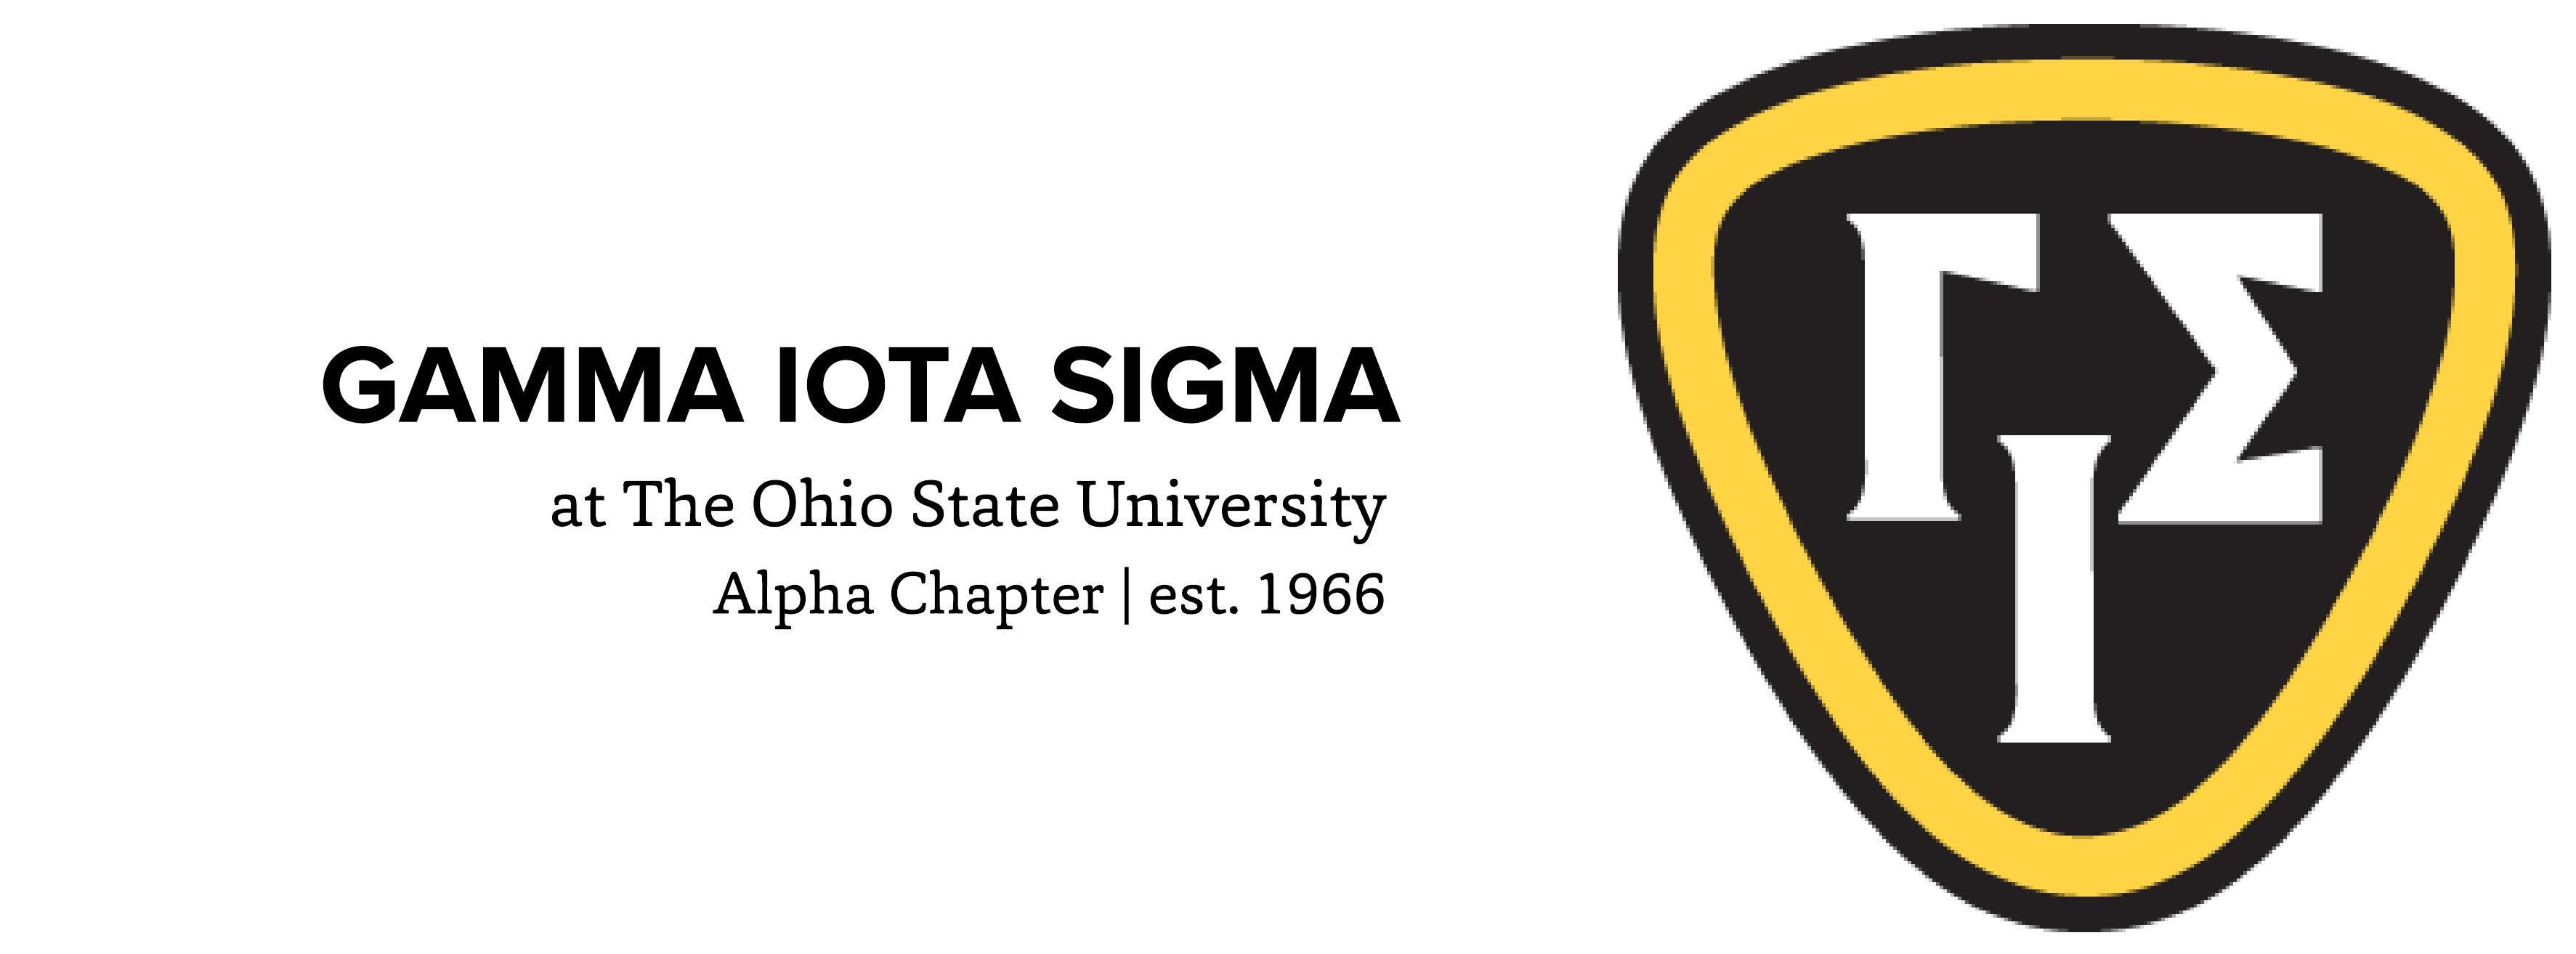 gamma iota sigma alpha chapter ohio state risk institute